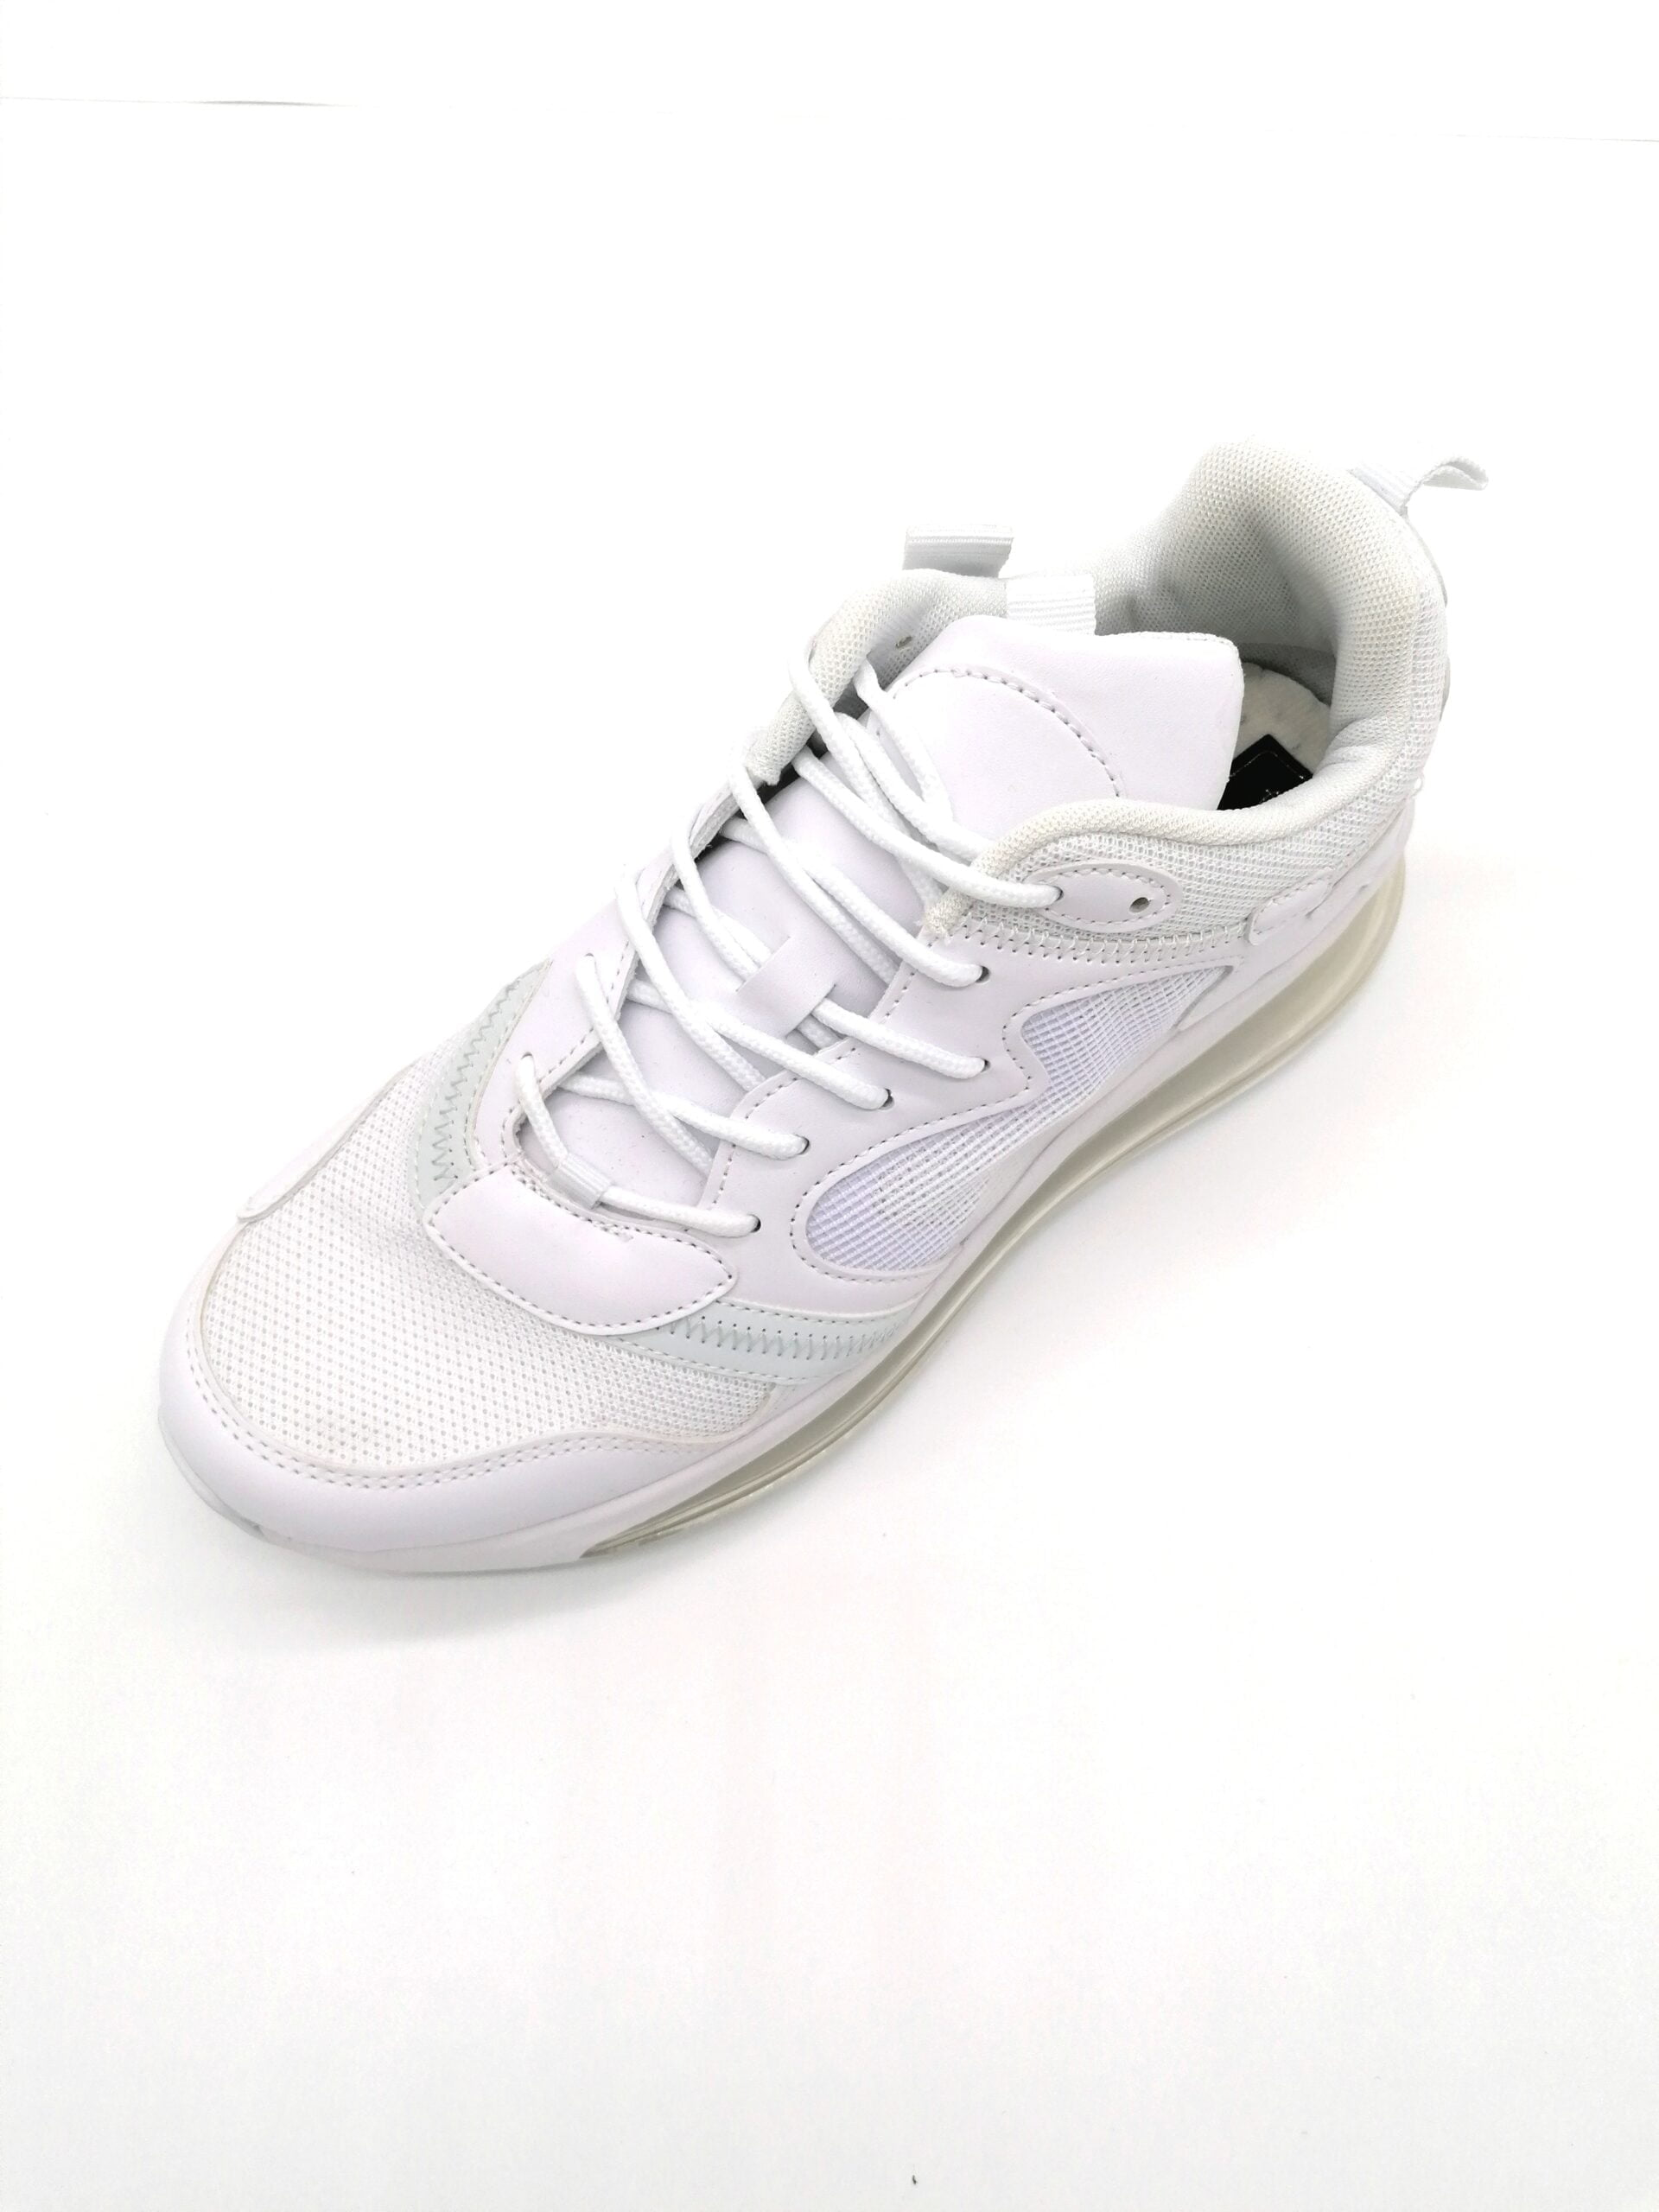 Sports shoe with white airship